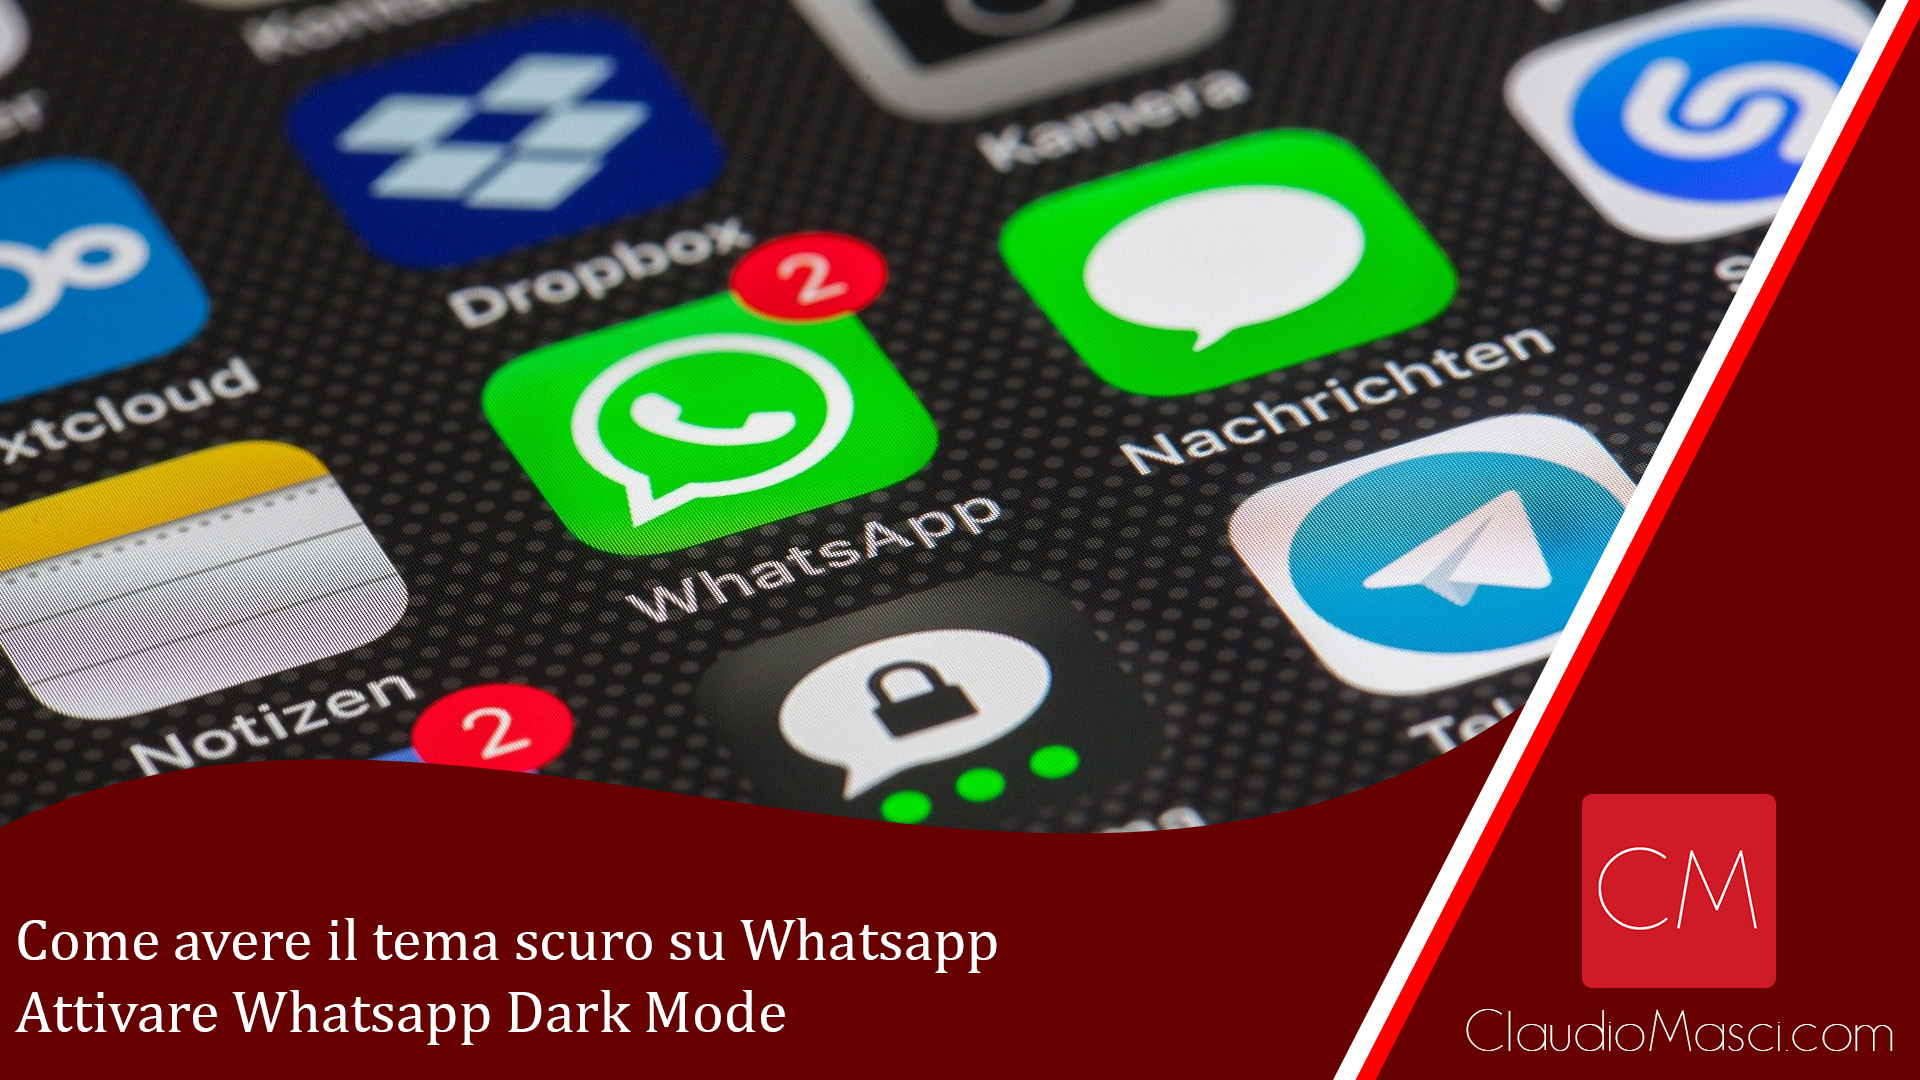 Come avere il tema scuro su WhatsApp – WhatsApp Dark Mode